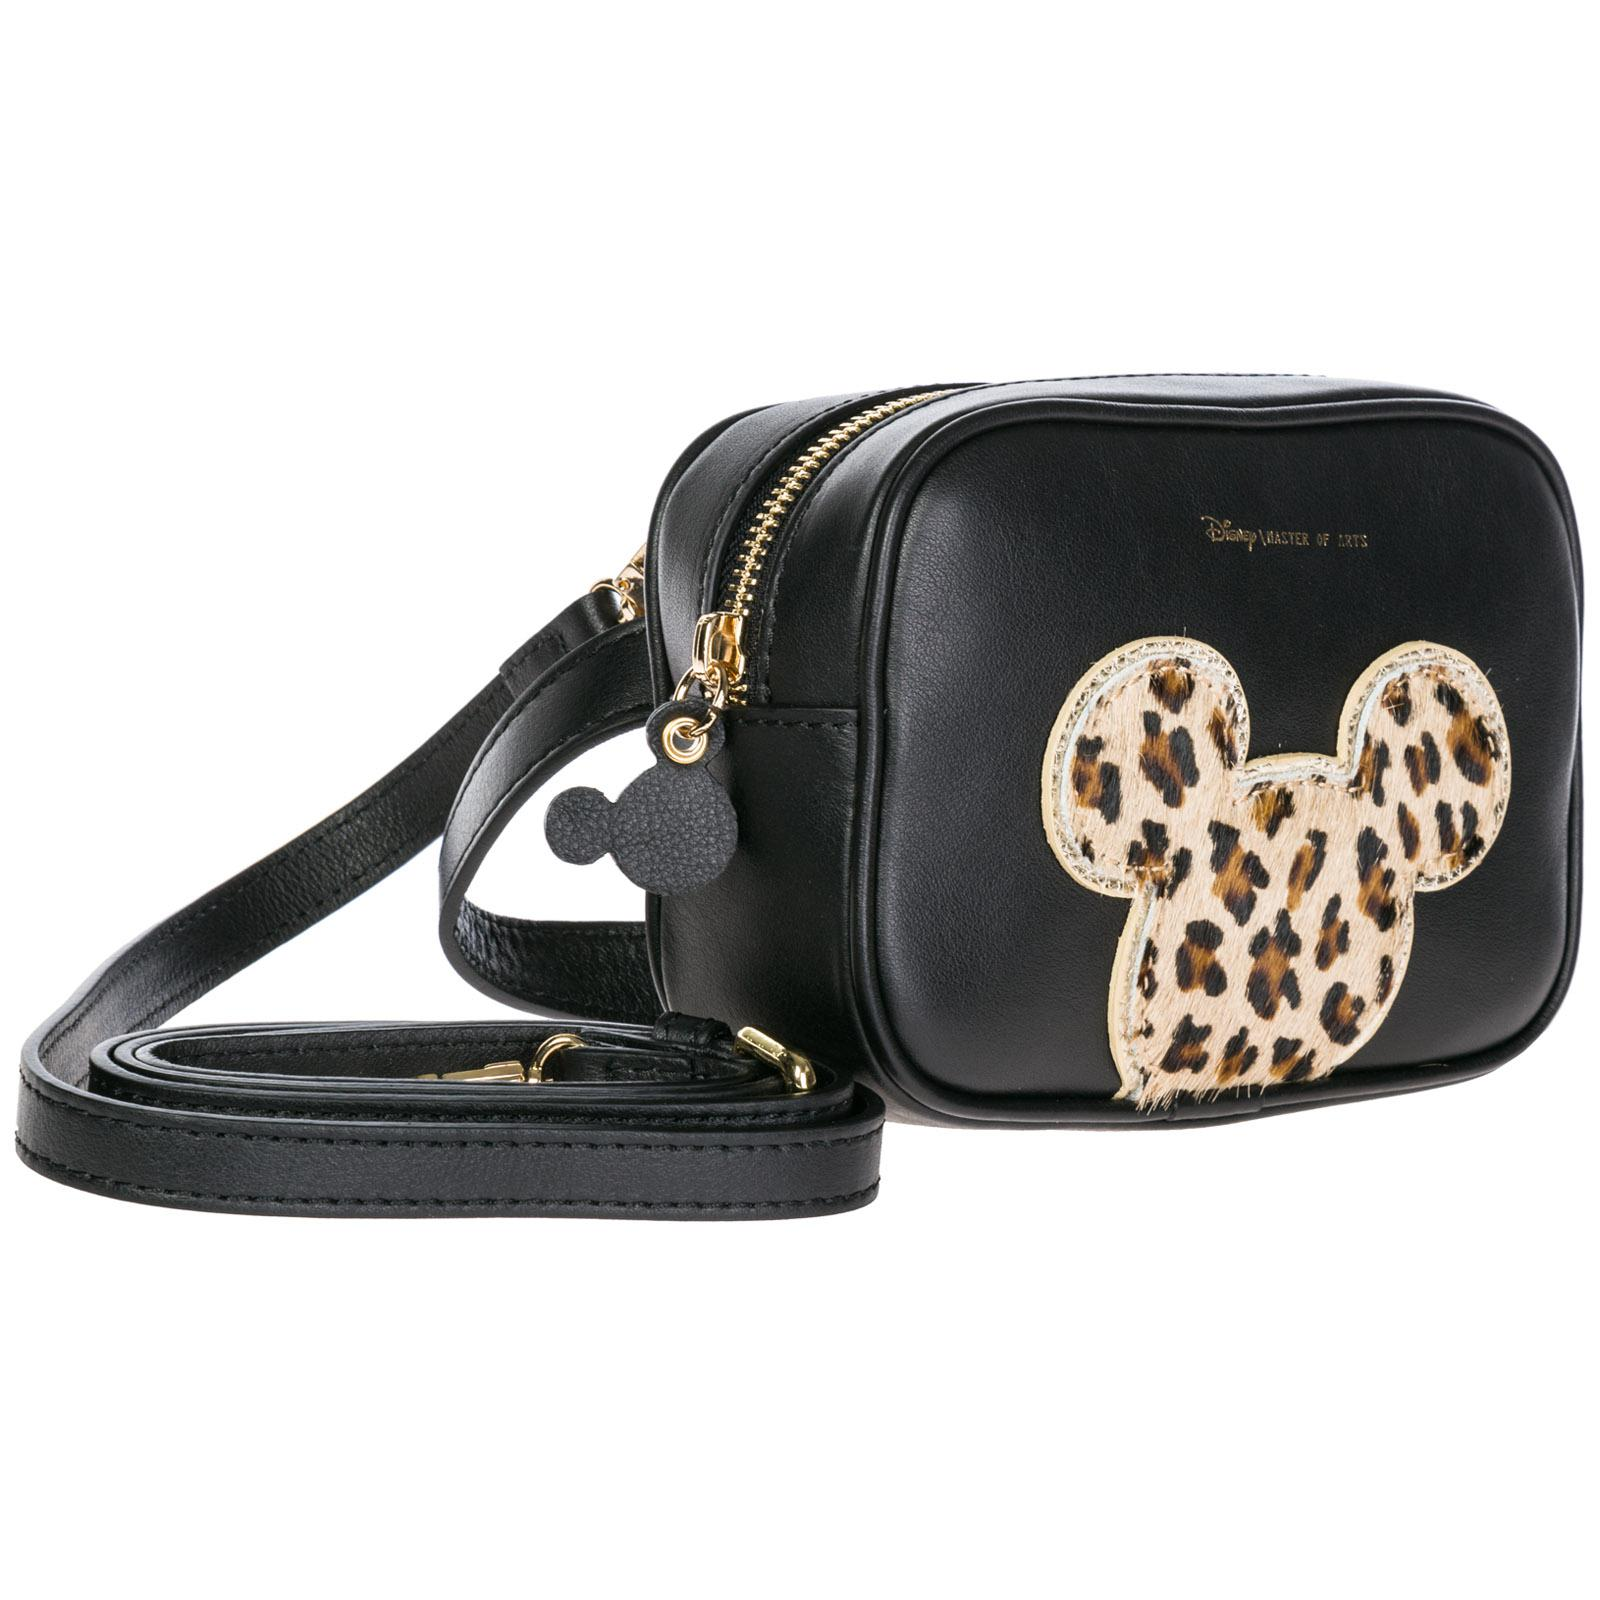 8dbc31bd8f0a MOA - Black Leather Belt Bum Bag Hip Pouch Disney Mickey Mouse - Lyst. View  fullscreen